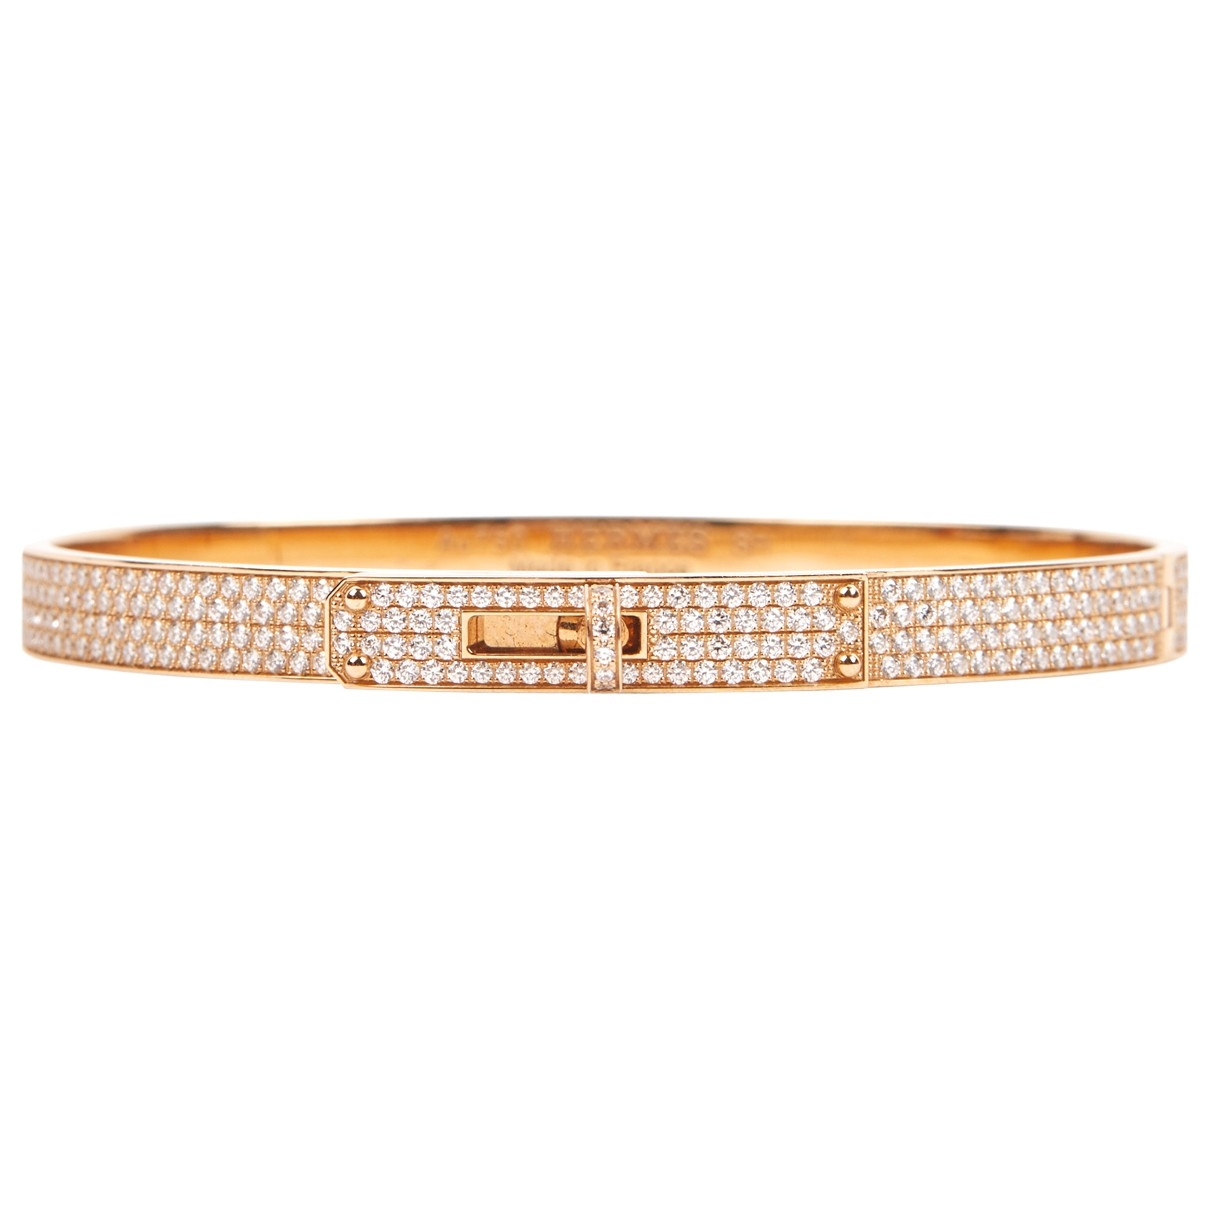 Hermes Kelly Armband in  Gold Rosegold